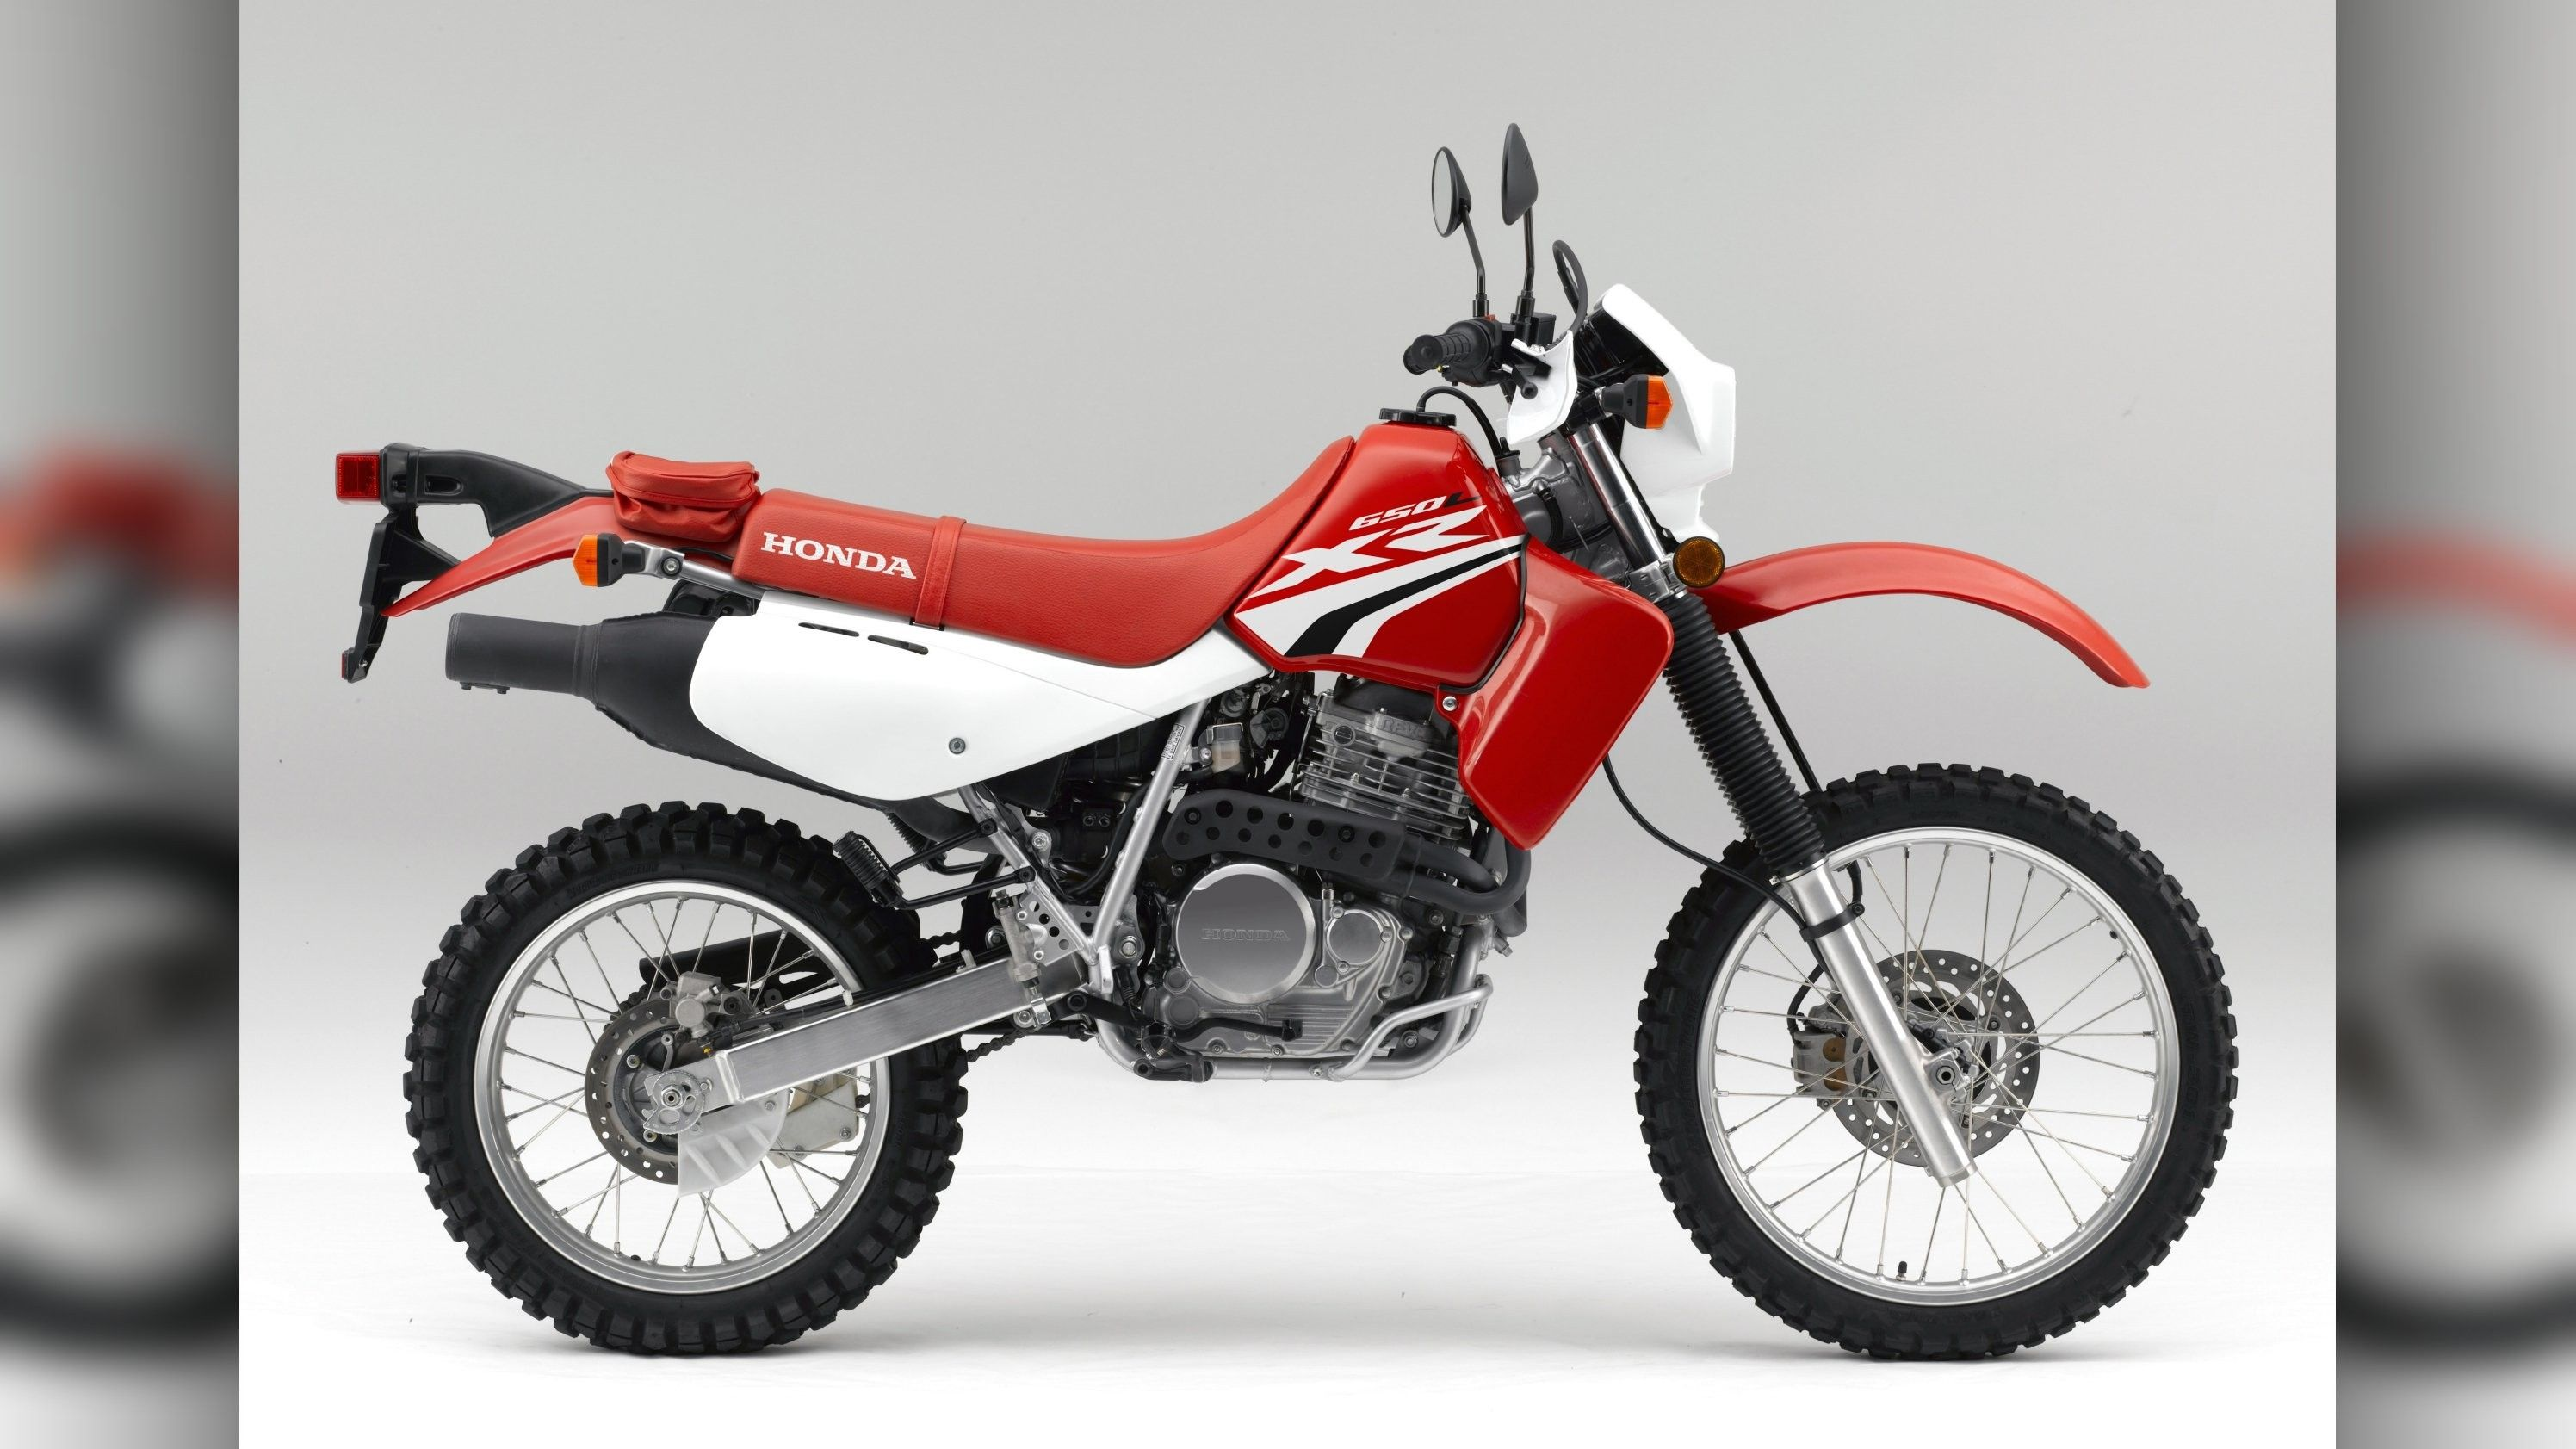 Research The 2019 Honda Xr650r With Our Expert Reviews And Ratings Additional New Features For The 2019 Honda Xr650r Motos De Motocross Motocross Motocicletas